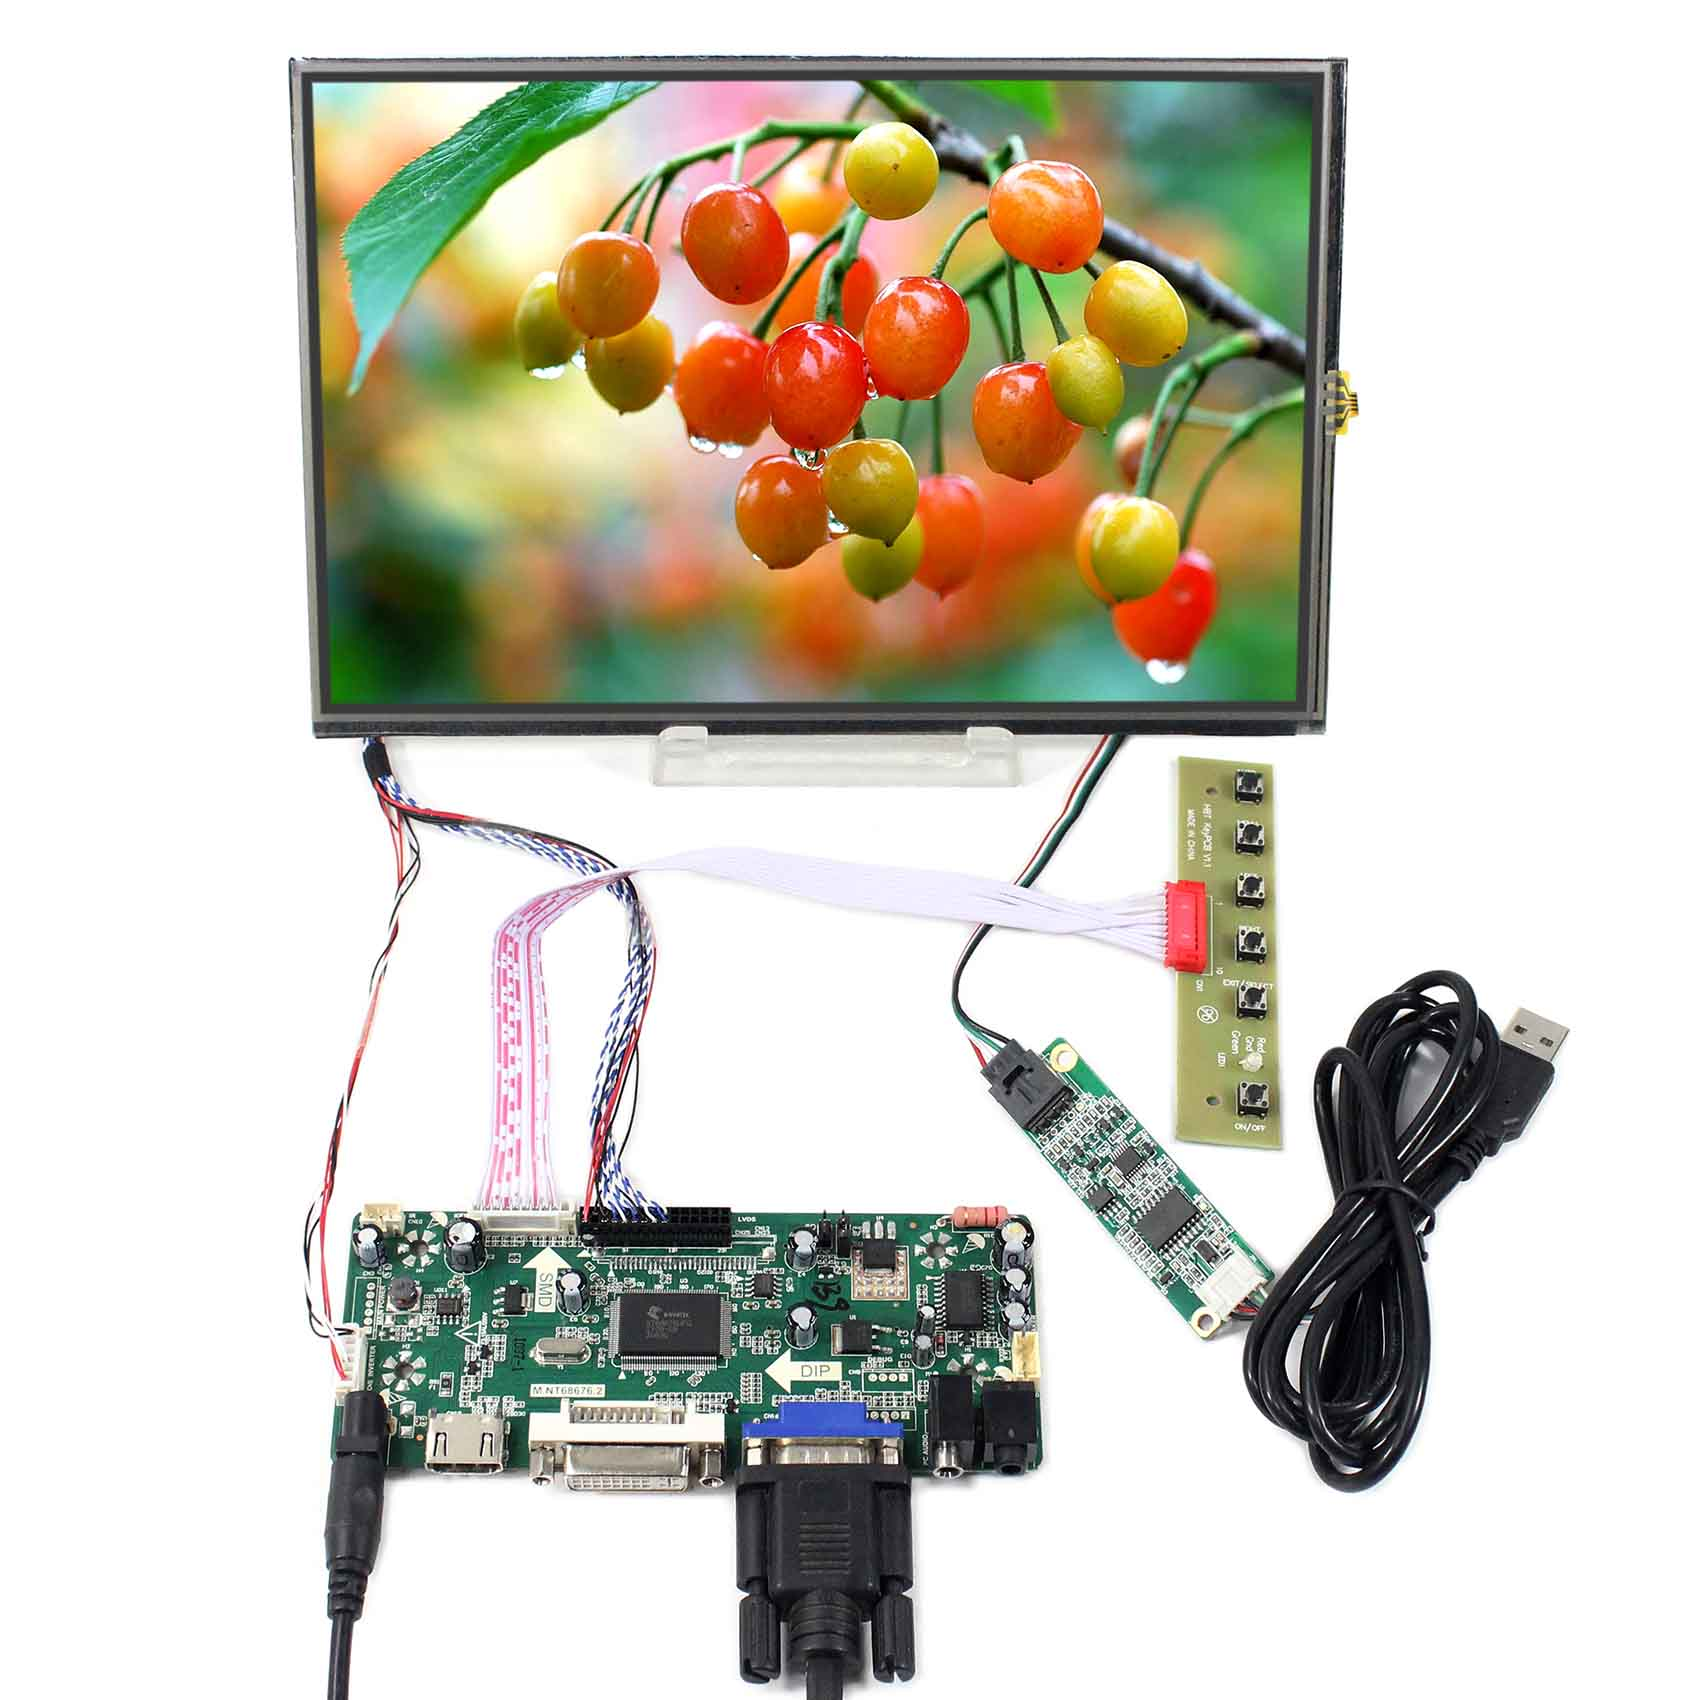 10.1inch M101NWWB 1280X800 LCD Screen With Resistive Touch VS101TP-A4 work with HDMI VGA DVI LCD Controller Board M.NT6867610.1inch M101NWWB 1280X800 LCD Screen With Resistive Touch VS101TP-A4 work with HDMI VGA DVI LCD Controller Board M.NT68676